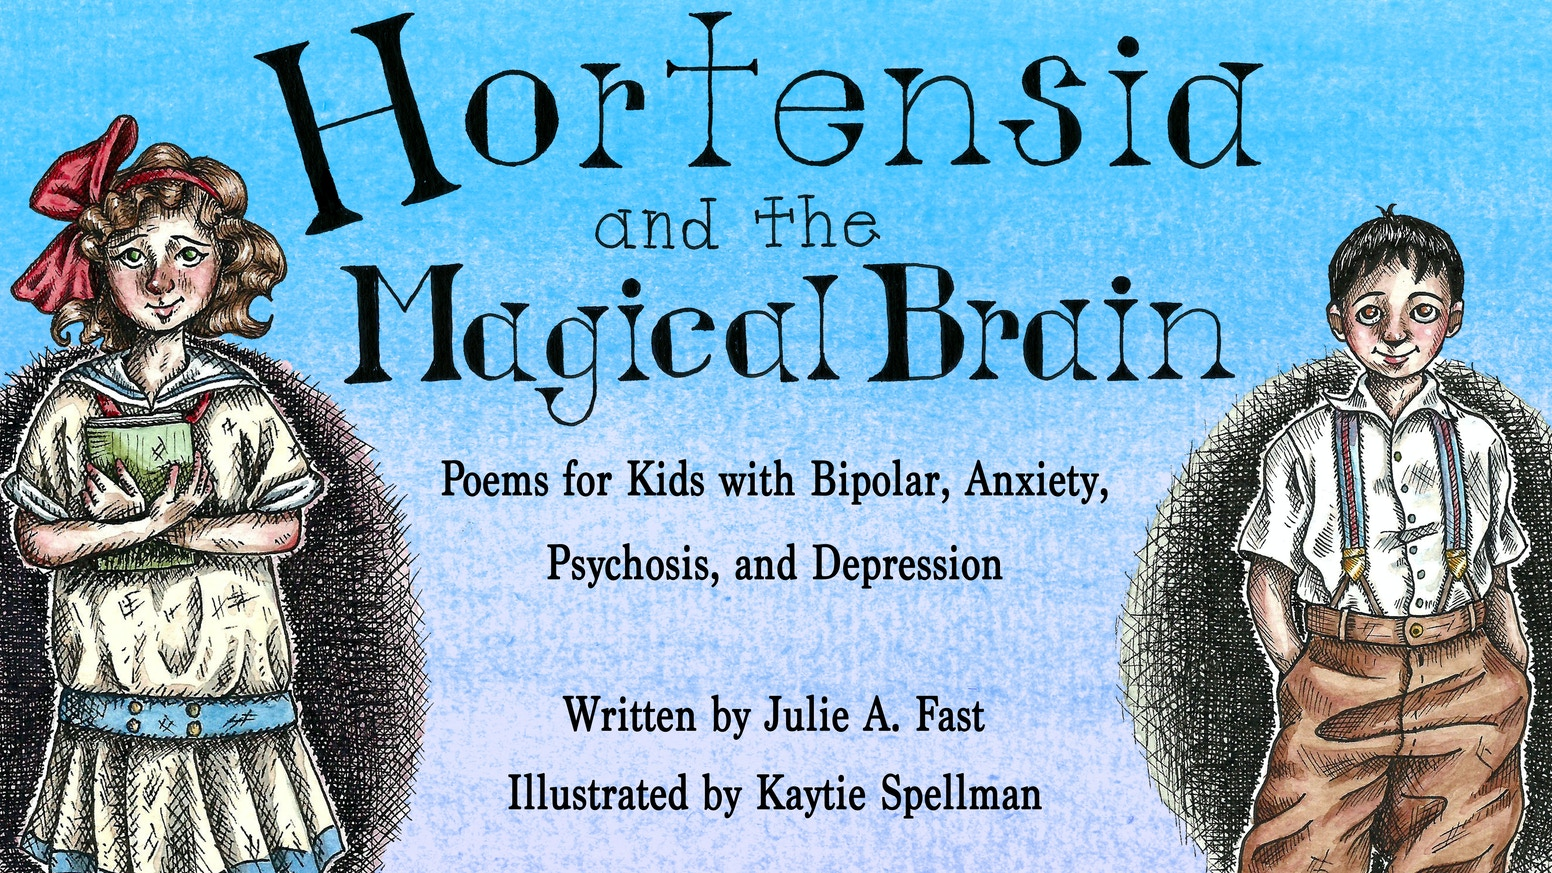 Therapeutic Poems for Kids with Bipolar, Anxiety, Psychosis and Depression. For some kids, the monster under the bed is real....